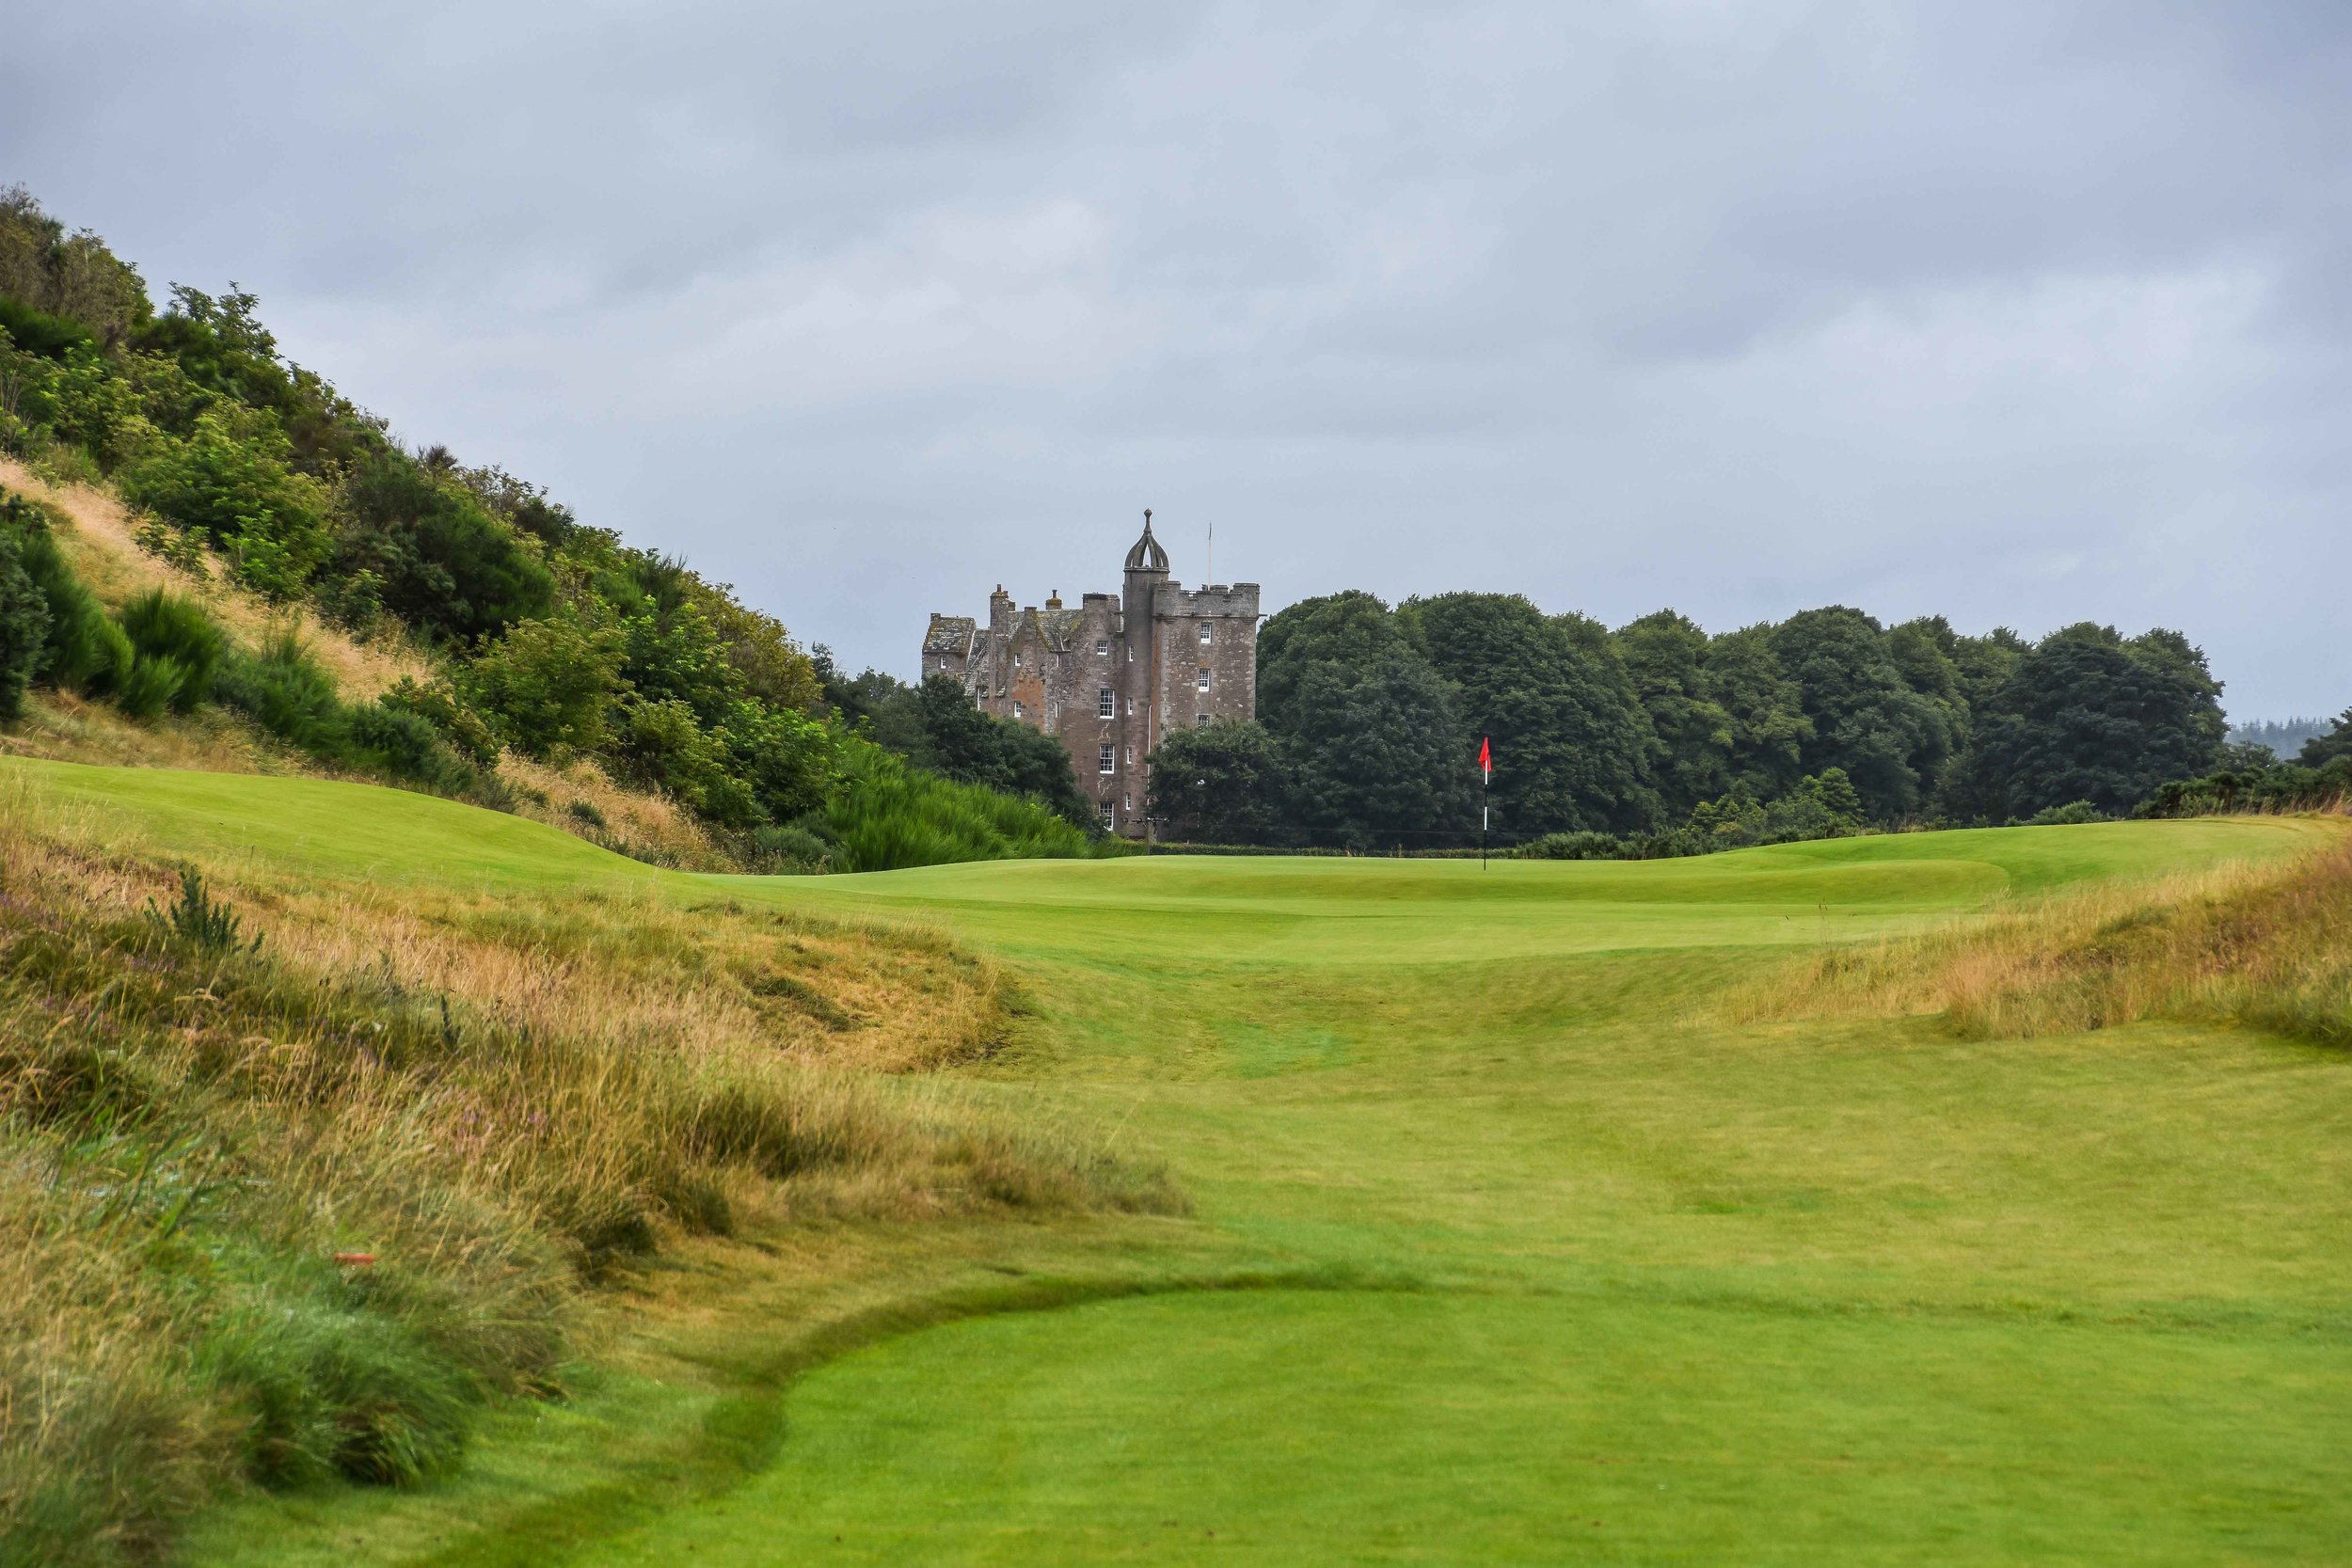 The Castle Stuart at Castle Stuart